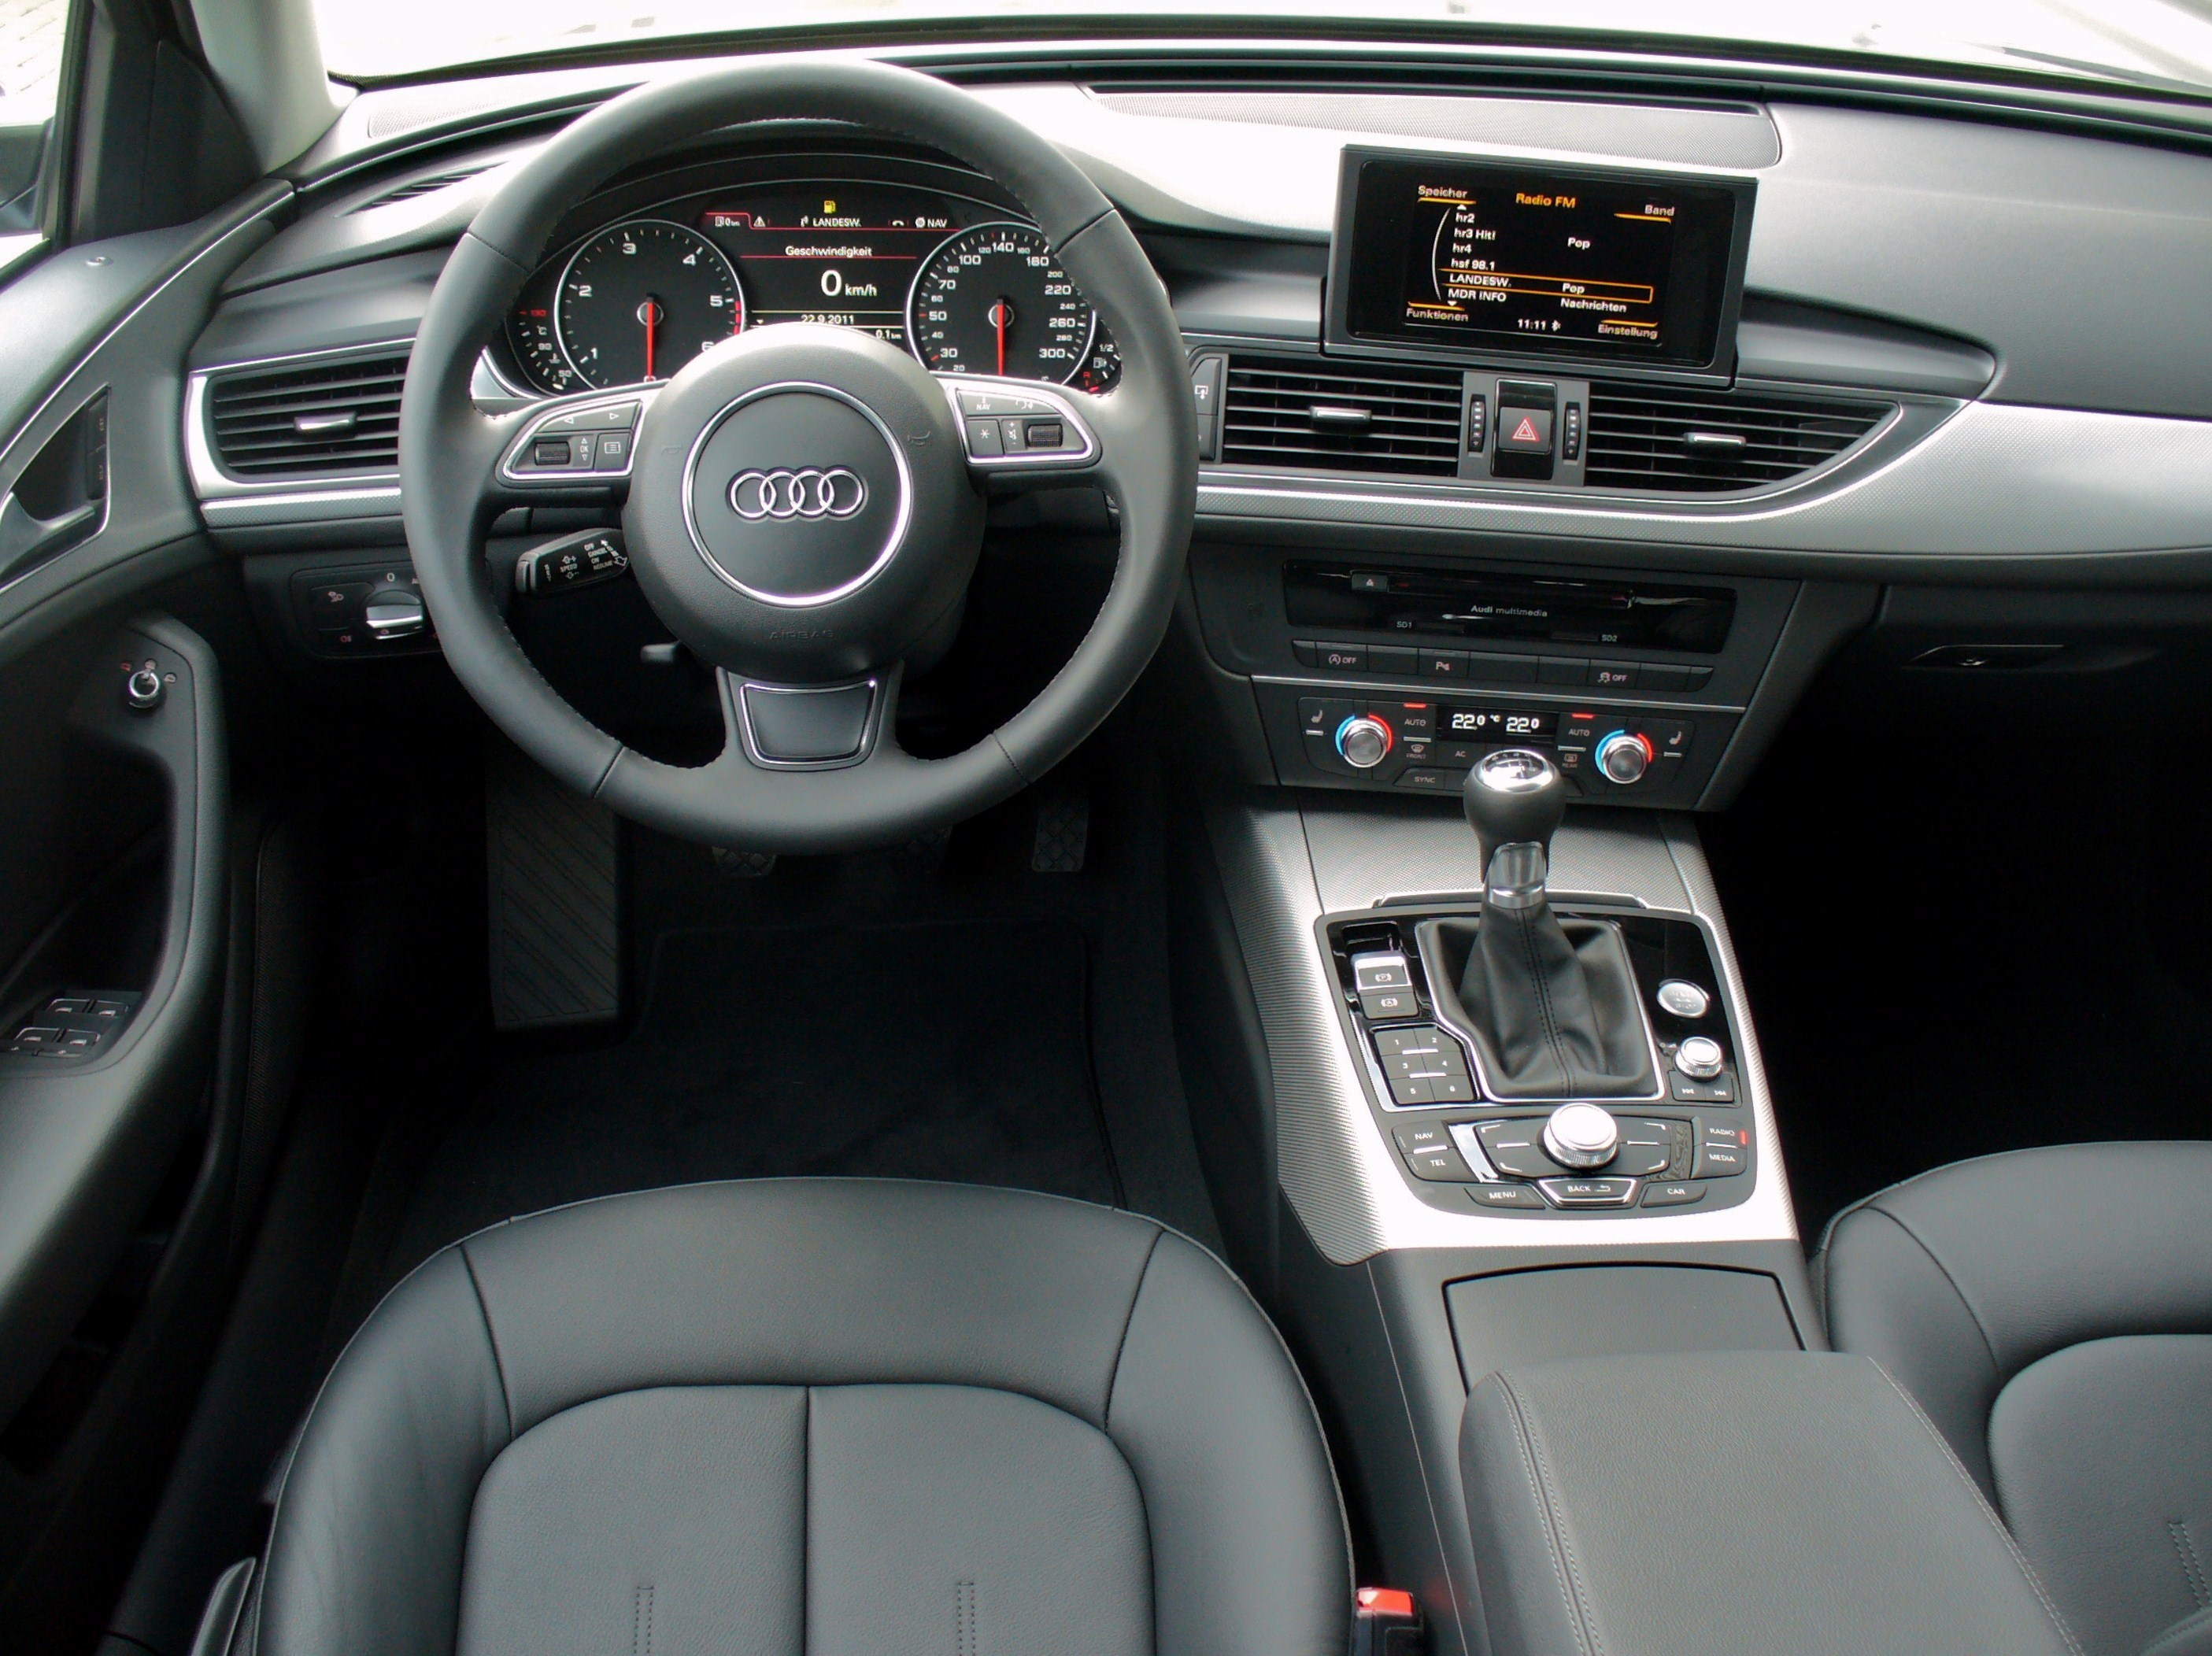 file audi a6 avant 2 0 tdi dakotagrau interieur jpg. Black Bedroom Furniture Sets. Home Design Ideas